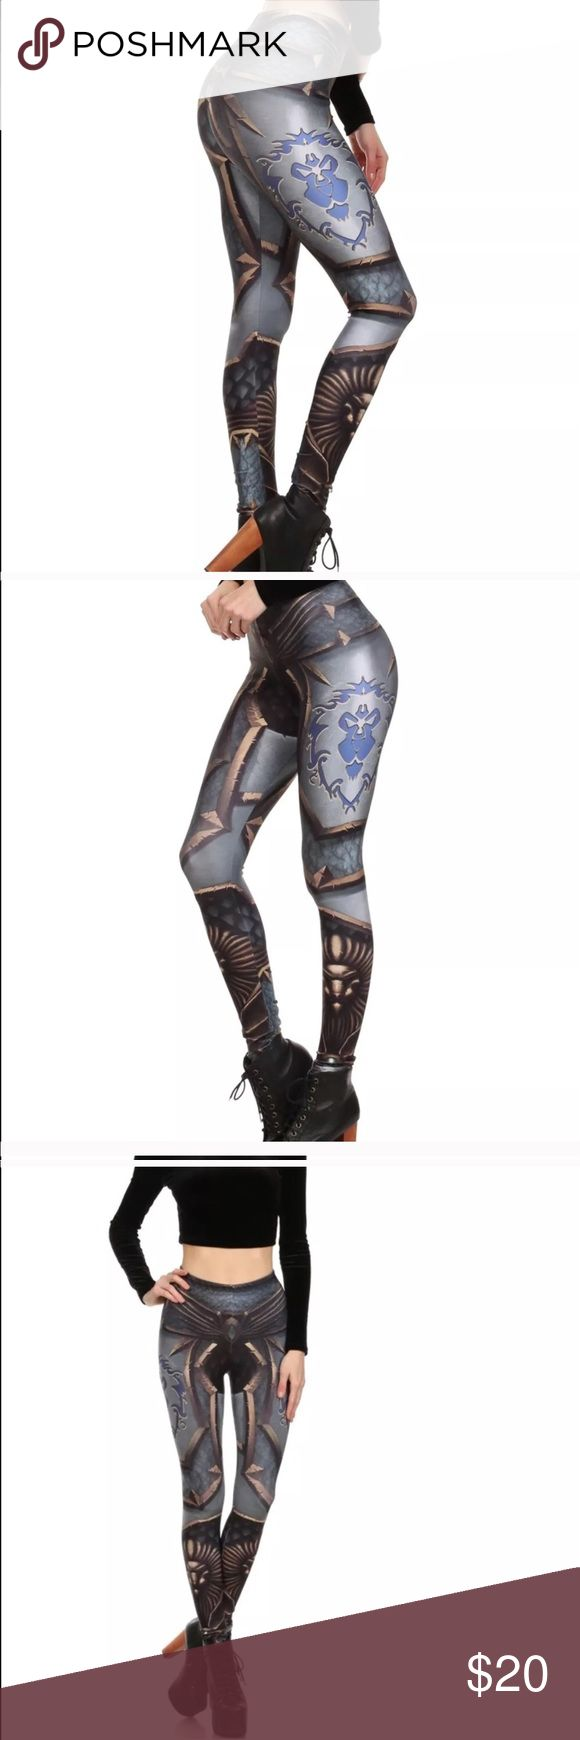 """World of Warcraft Alliance armor leggings 3D print Brand new leggings Sz xs-s  Price firm  Waist laying flat: 11 1/2"""" unstretched and can be stretched up to 18"""" laying flat  Ankle leggings 88% polyester  12% spandex no brand Pants Leggings"""